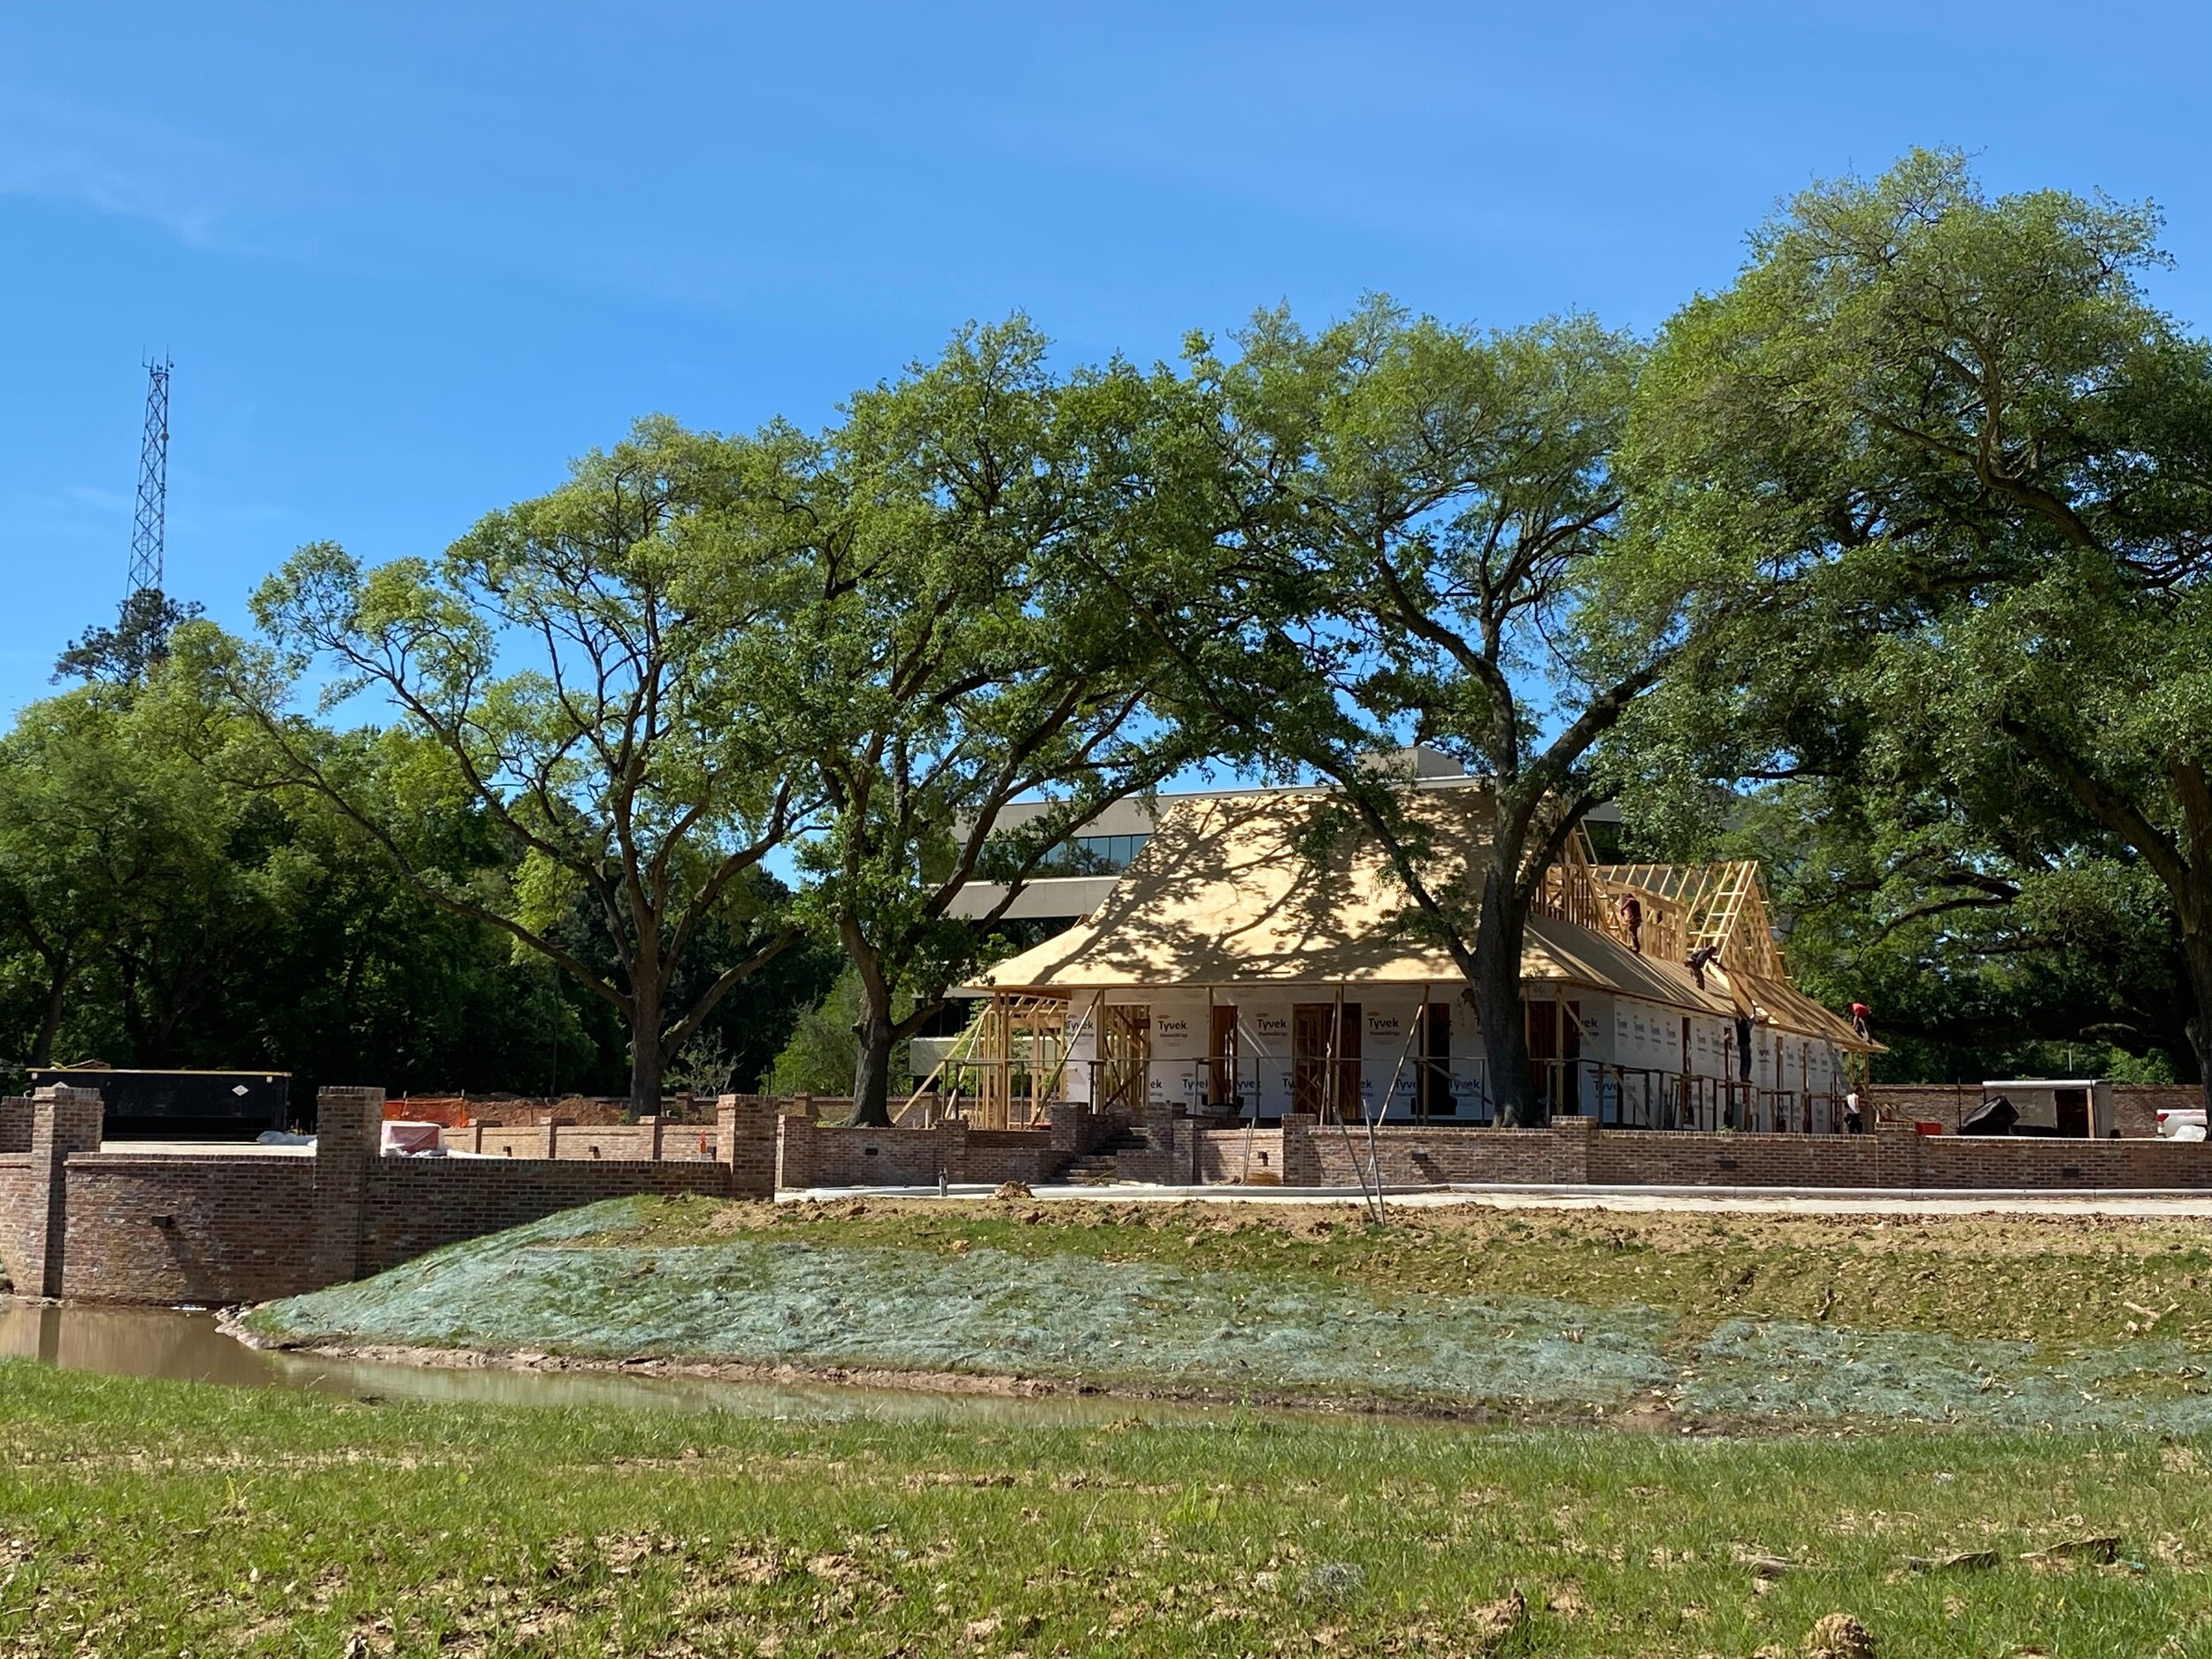 This Iberville Grove progress photo was taken on April 1, 2020. Here you see the pond, eye-catching retaining walls, and the beautiful oak trees that frame the building.